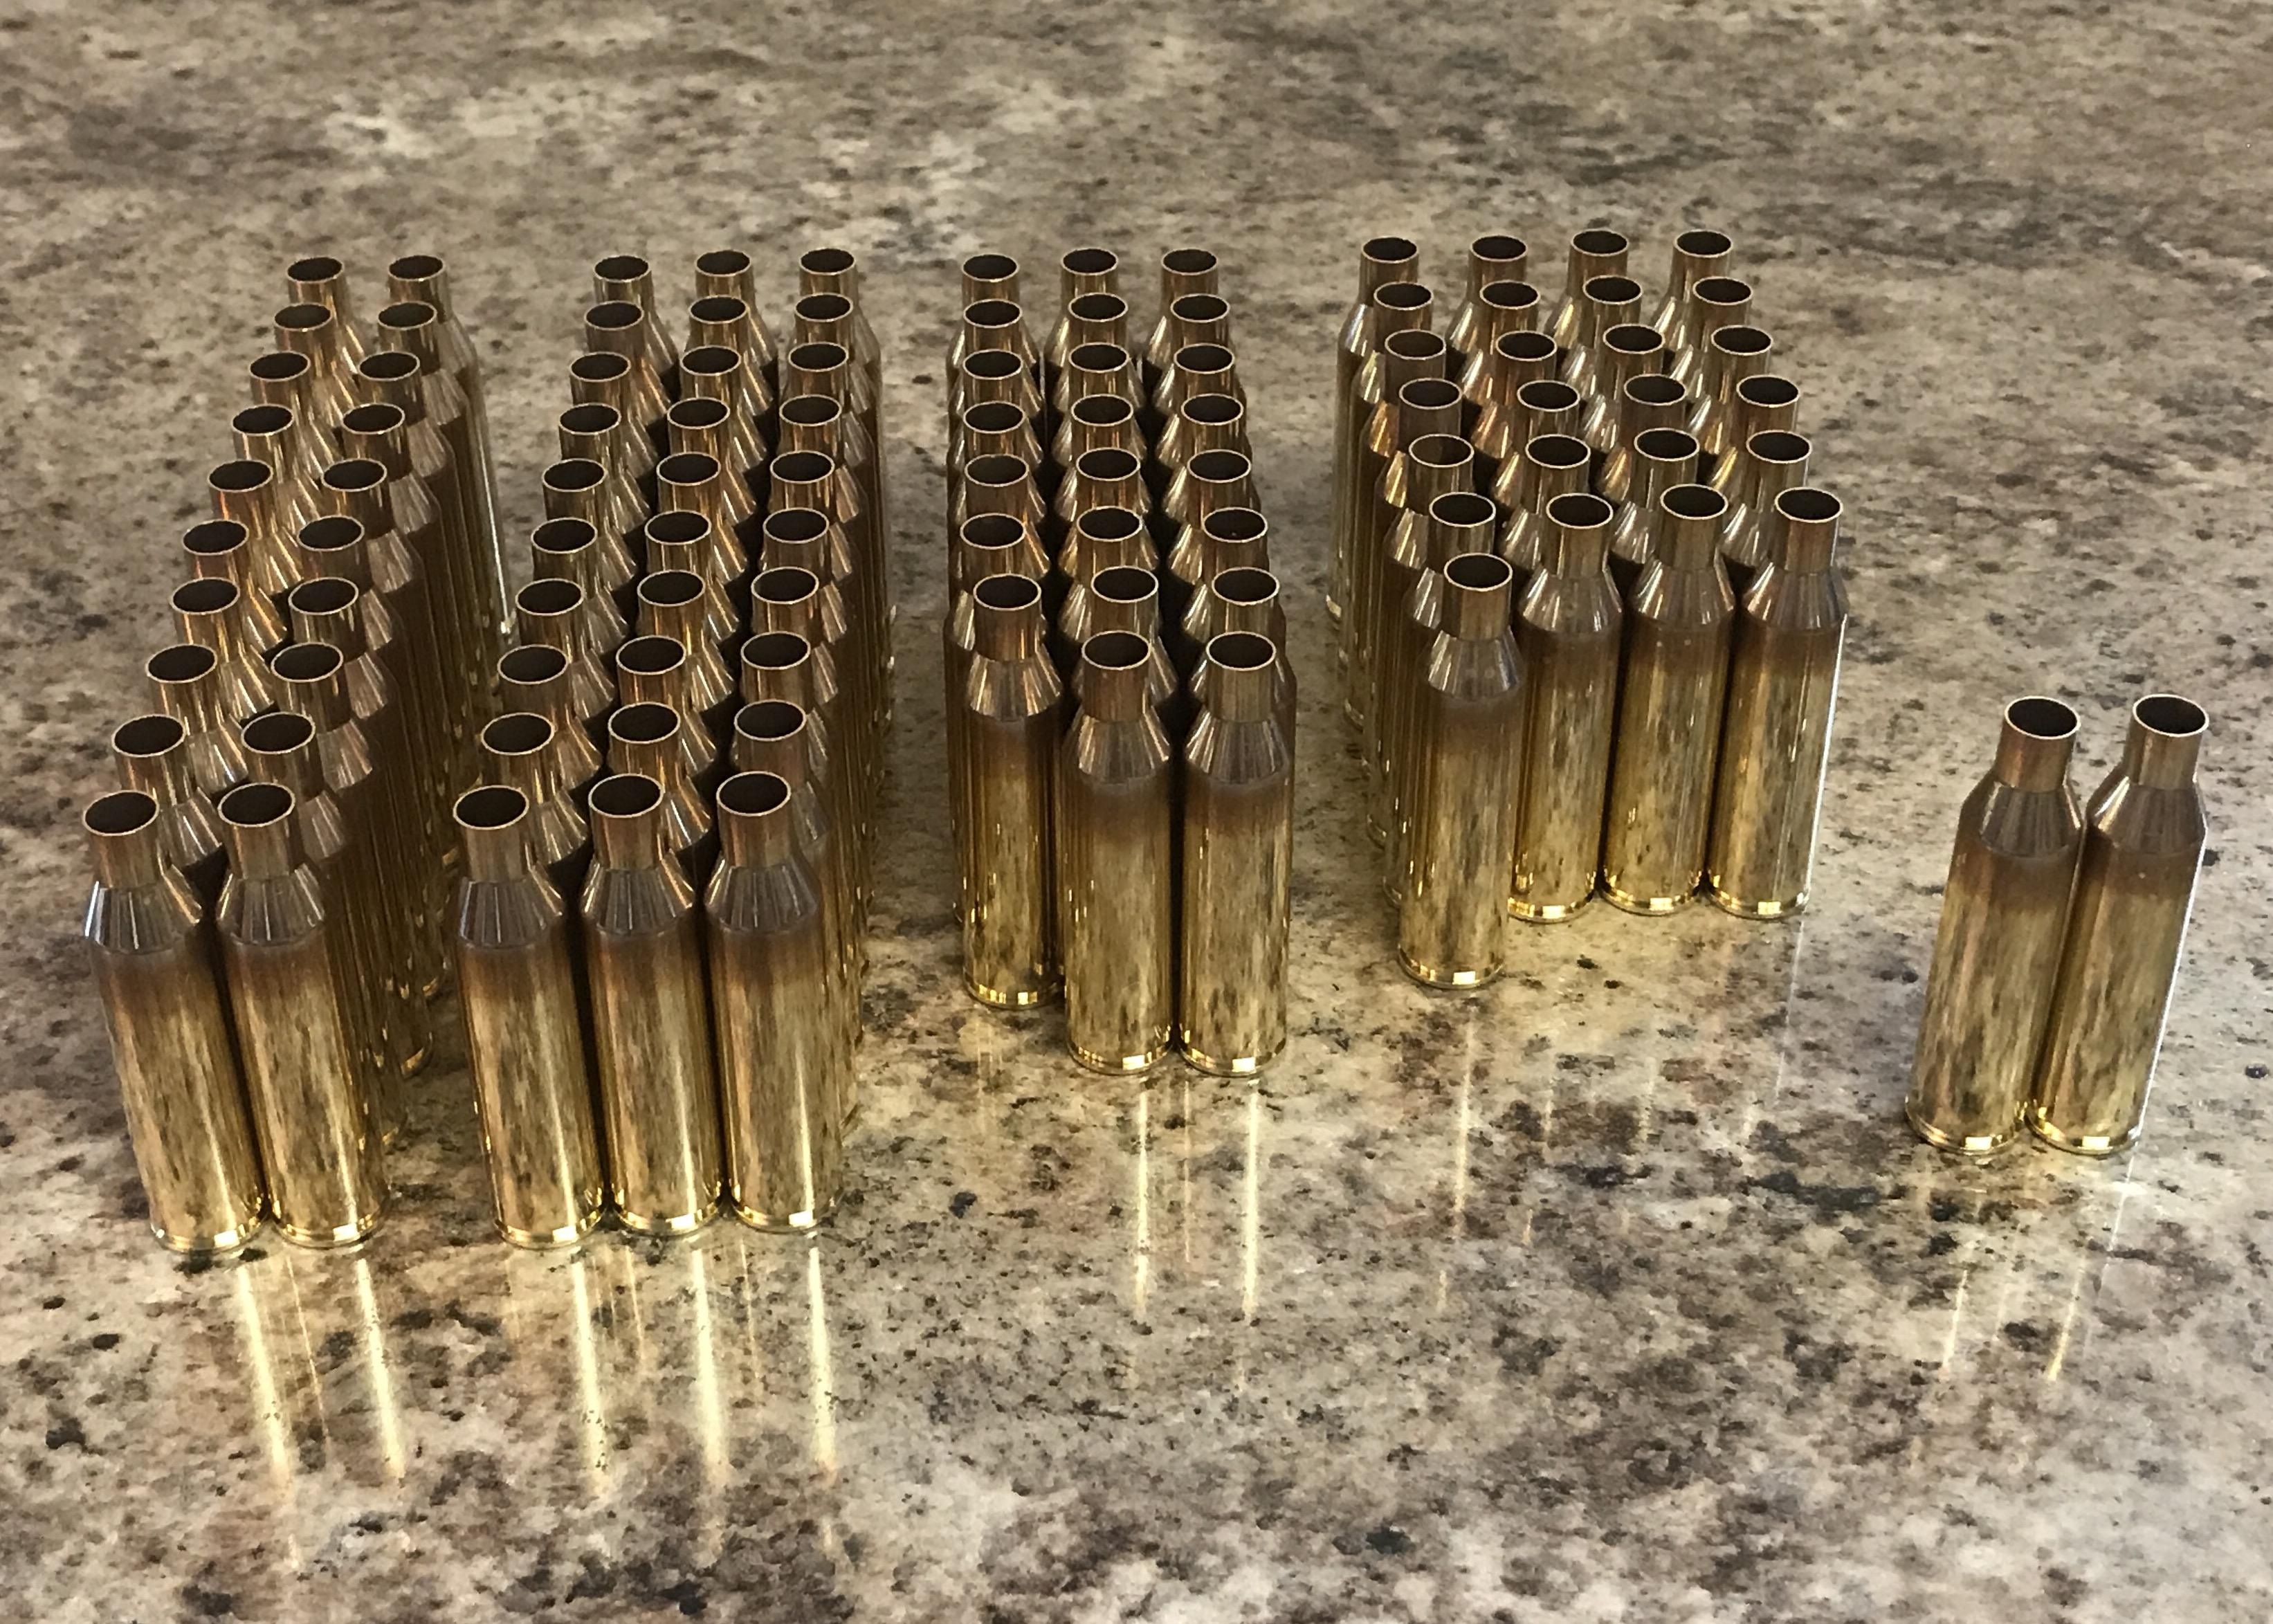 Peterson 300 Norma Mag brass | Long Range Hunting Forum